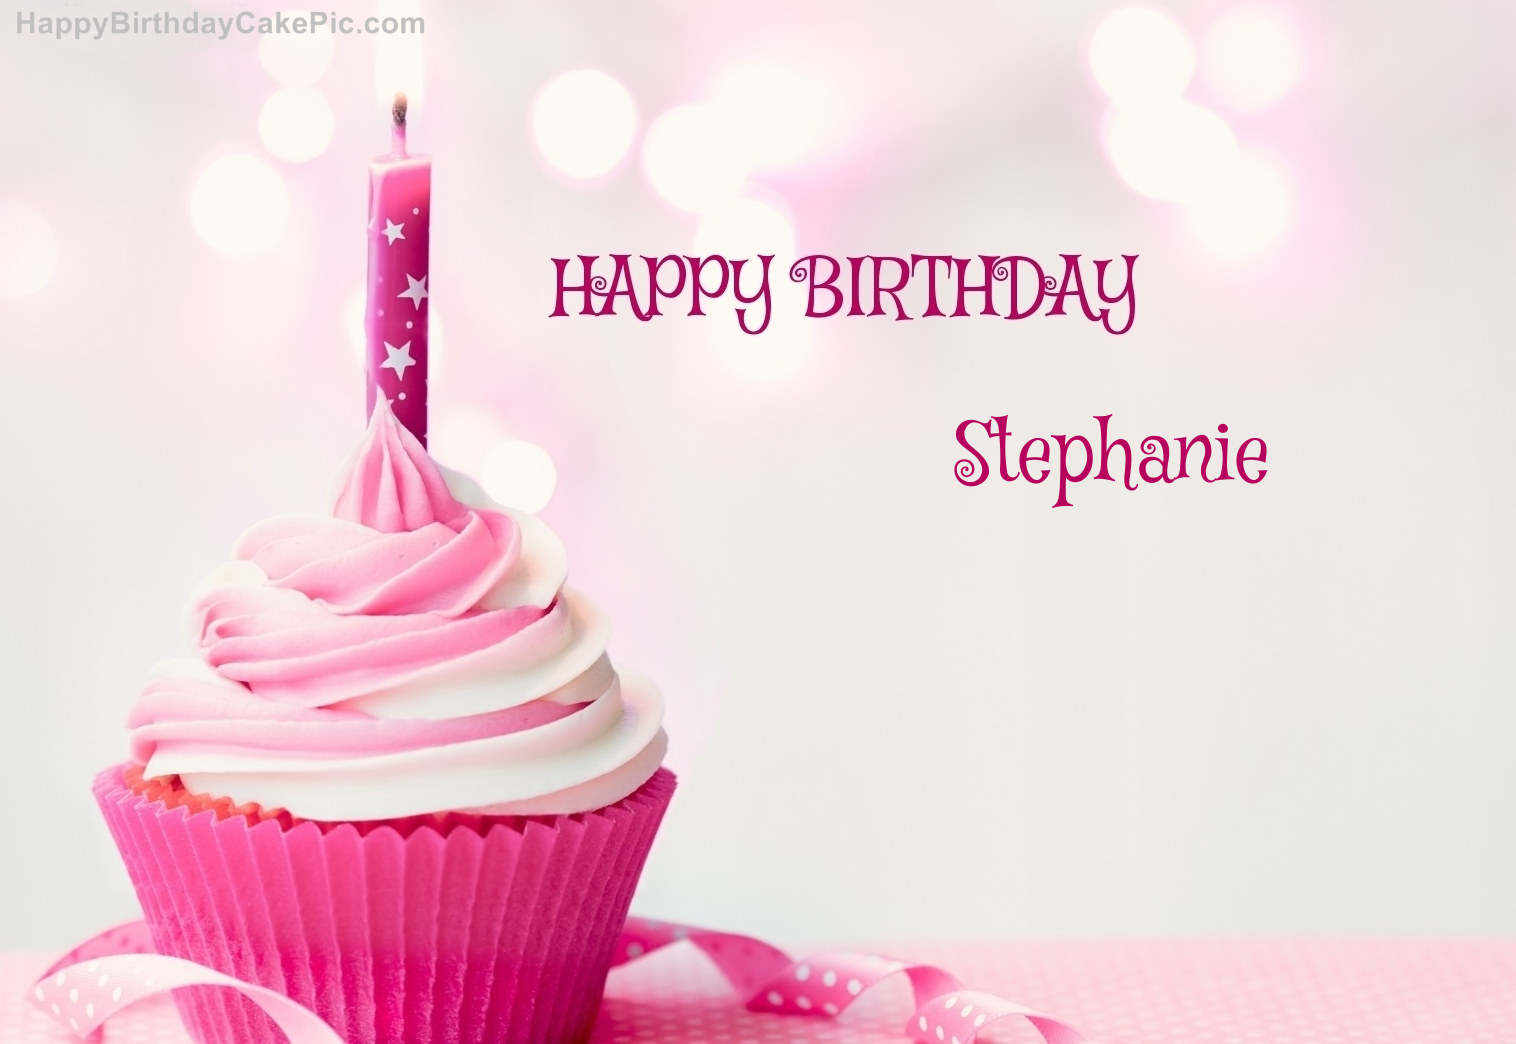 Happy Birthday Cupcake Candle Pink Cake For Stephanie